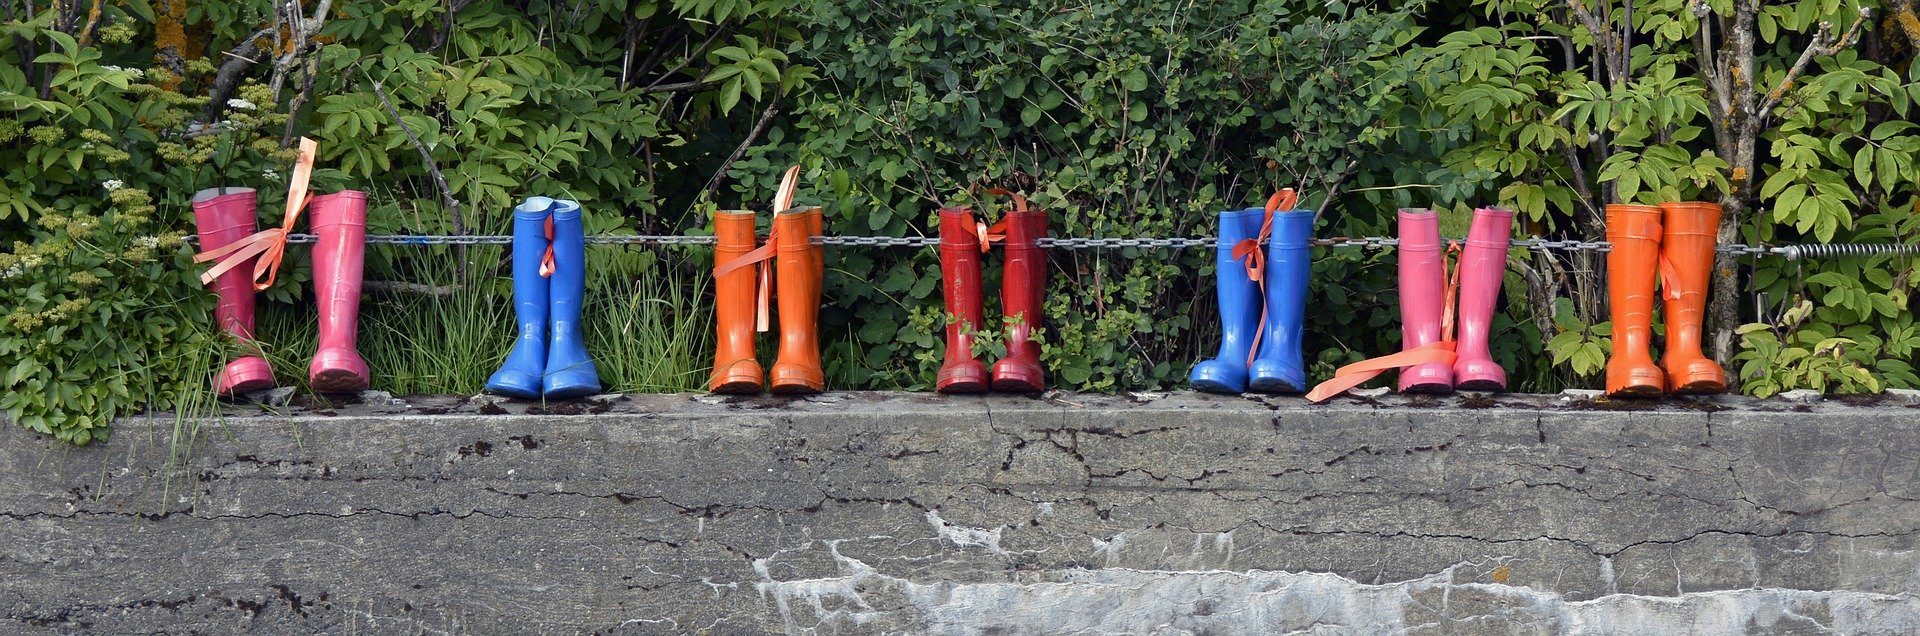 rubber-boots-1594820_1920